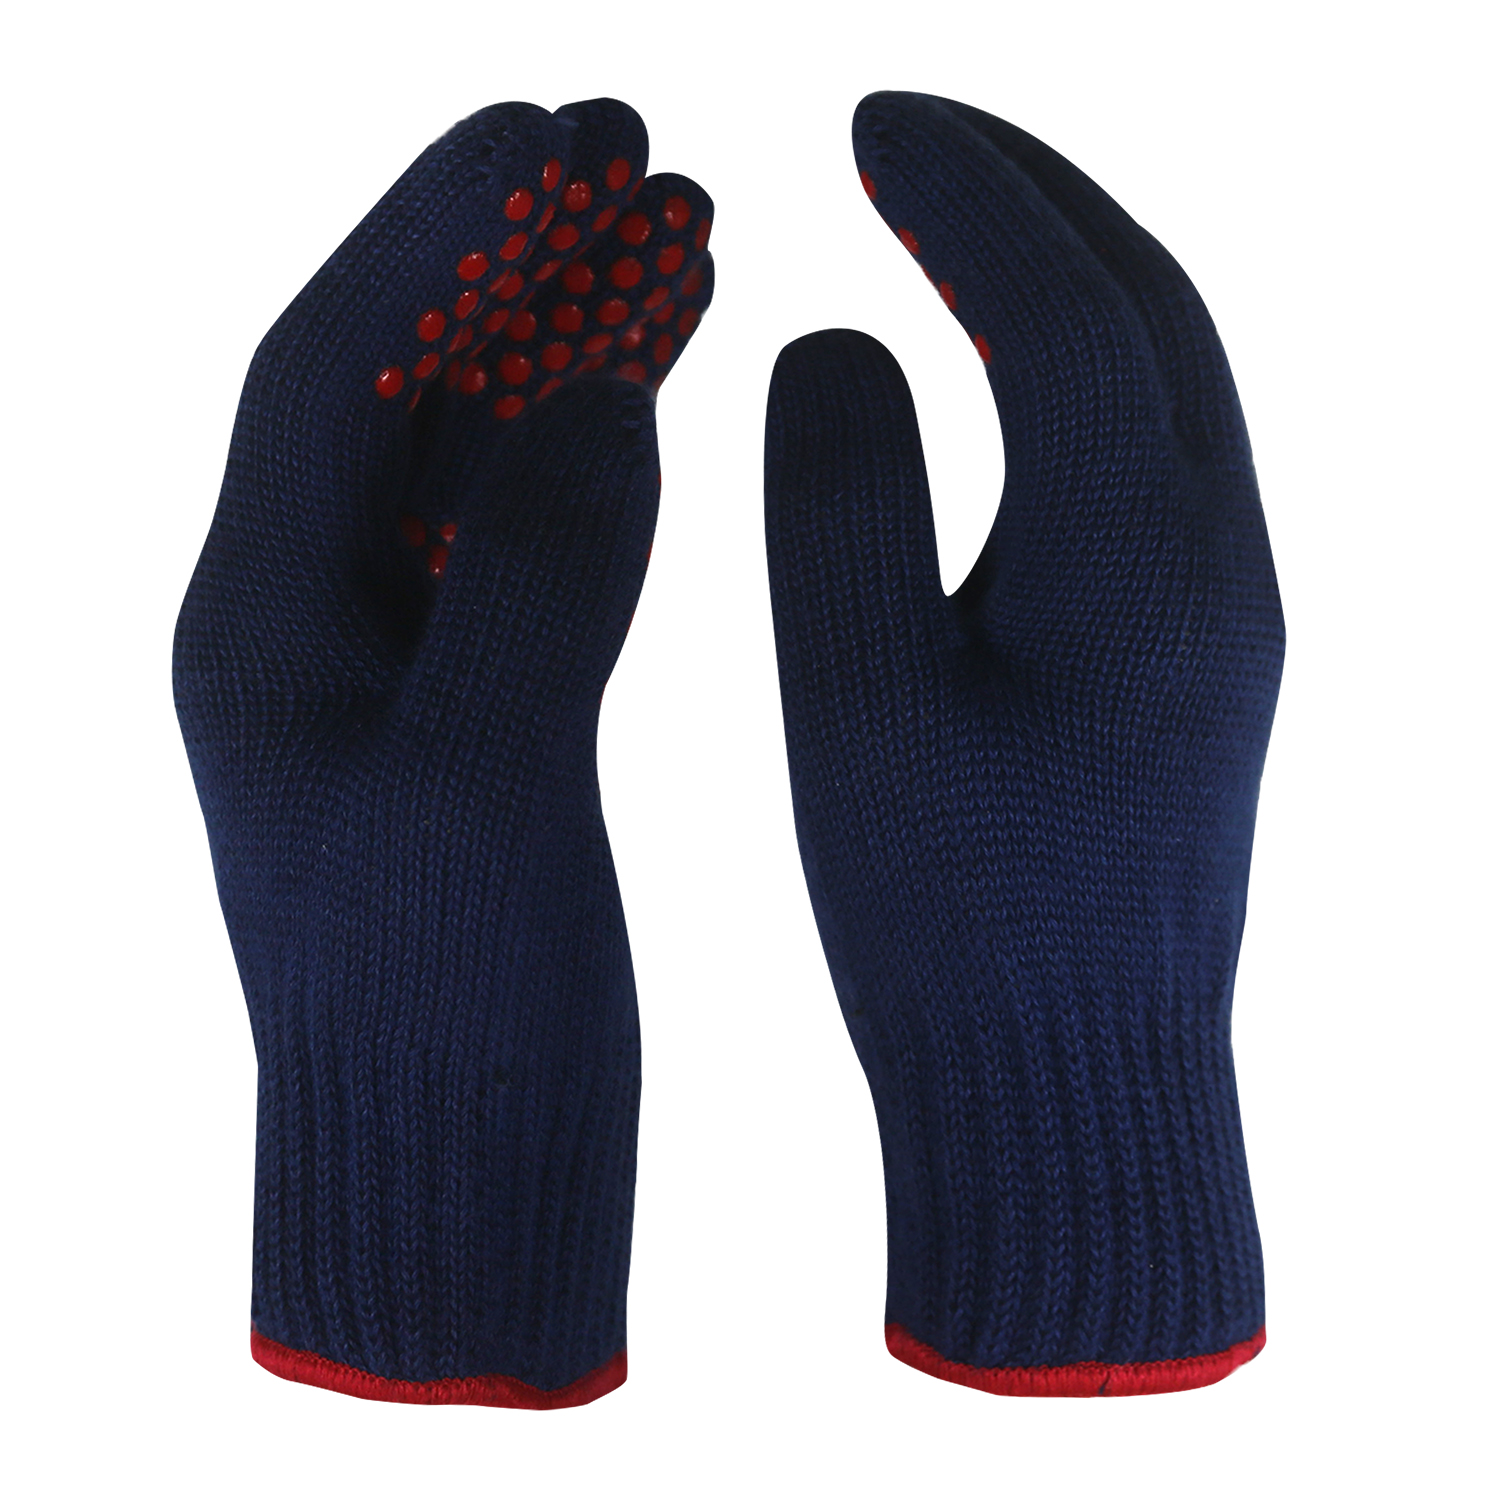 BBQ Gloves for Men, Women with Silicone on Palm/HRG-006